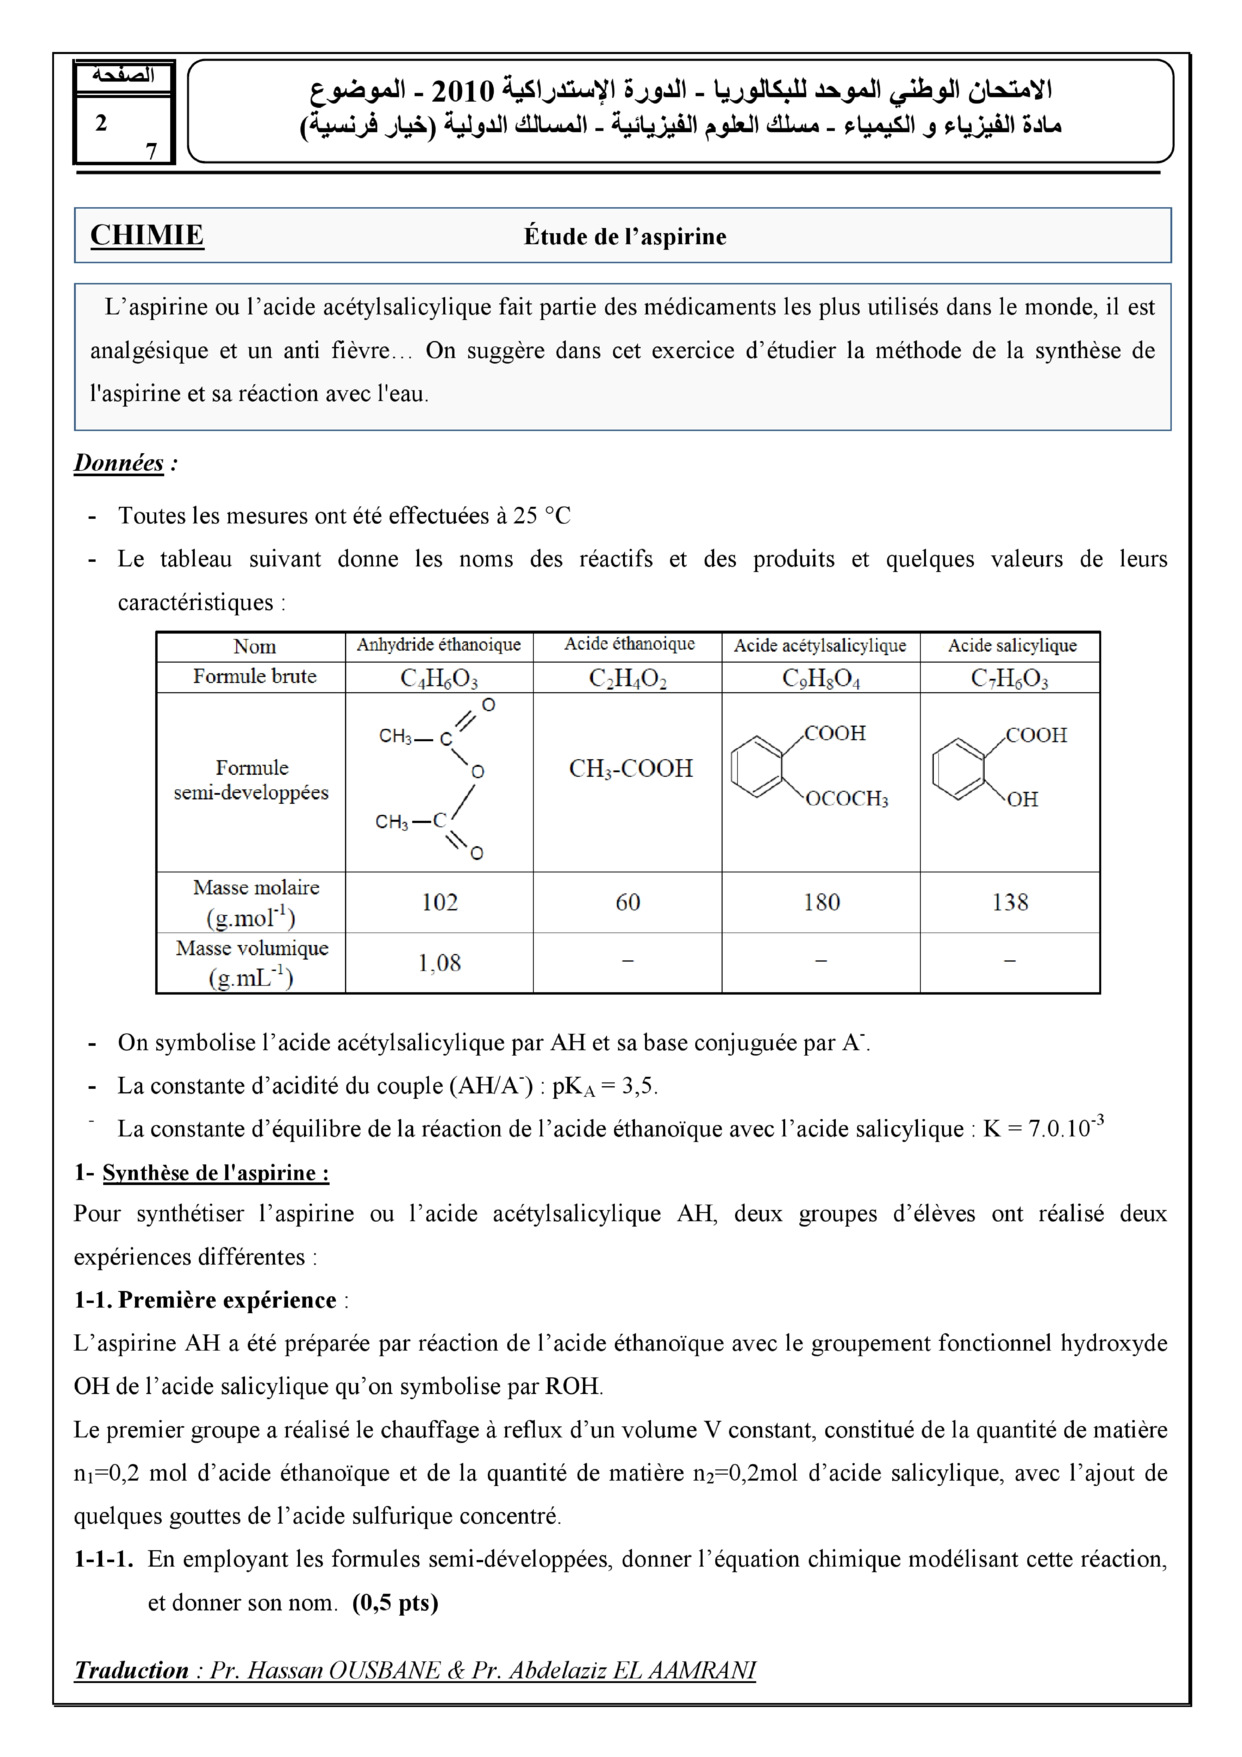 Examen National Physique-Chimie SPC 2010 Rattrapage - Sujet2.jpg